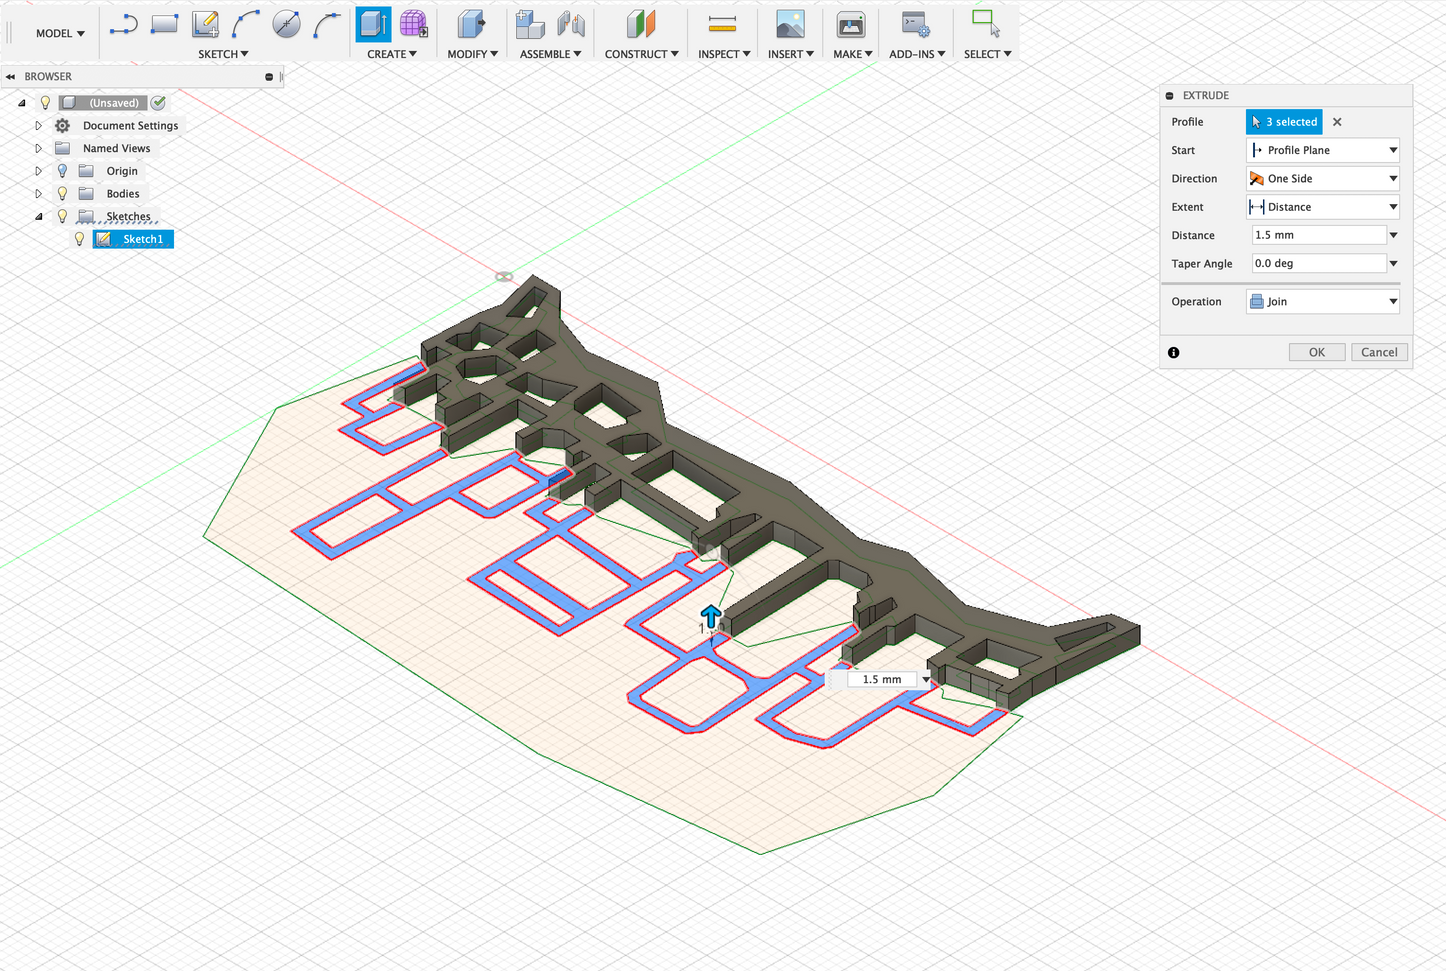 After importing the svg file to Fusion 360, I extruded the halves to different heights. I then exported the stl file to further sculpt it.